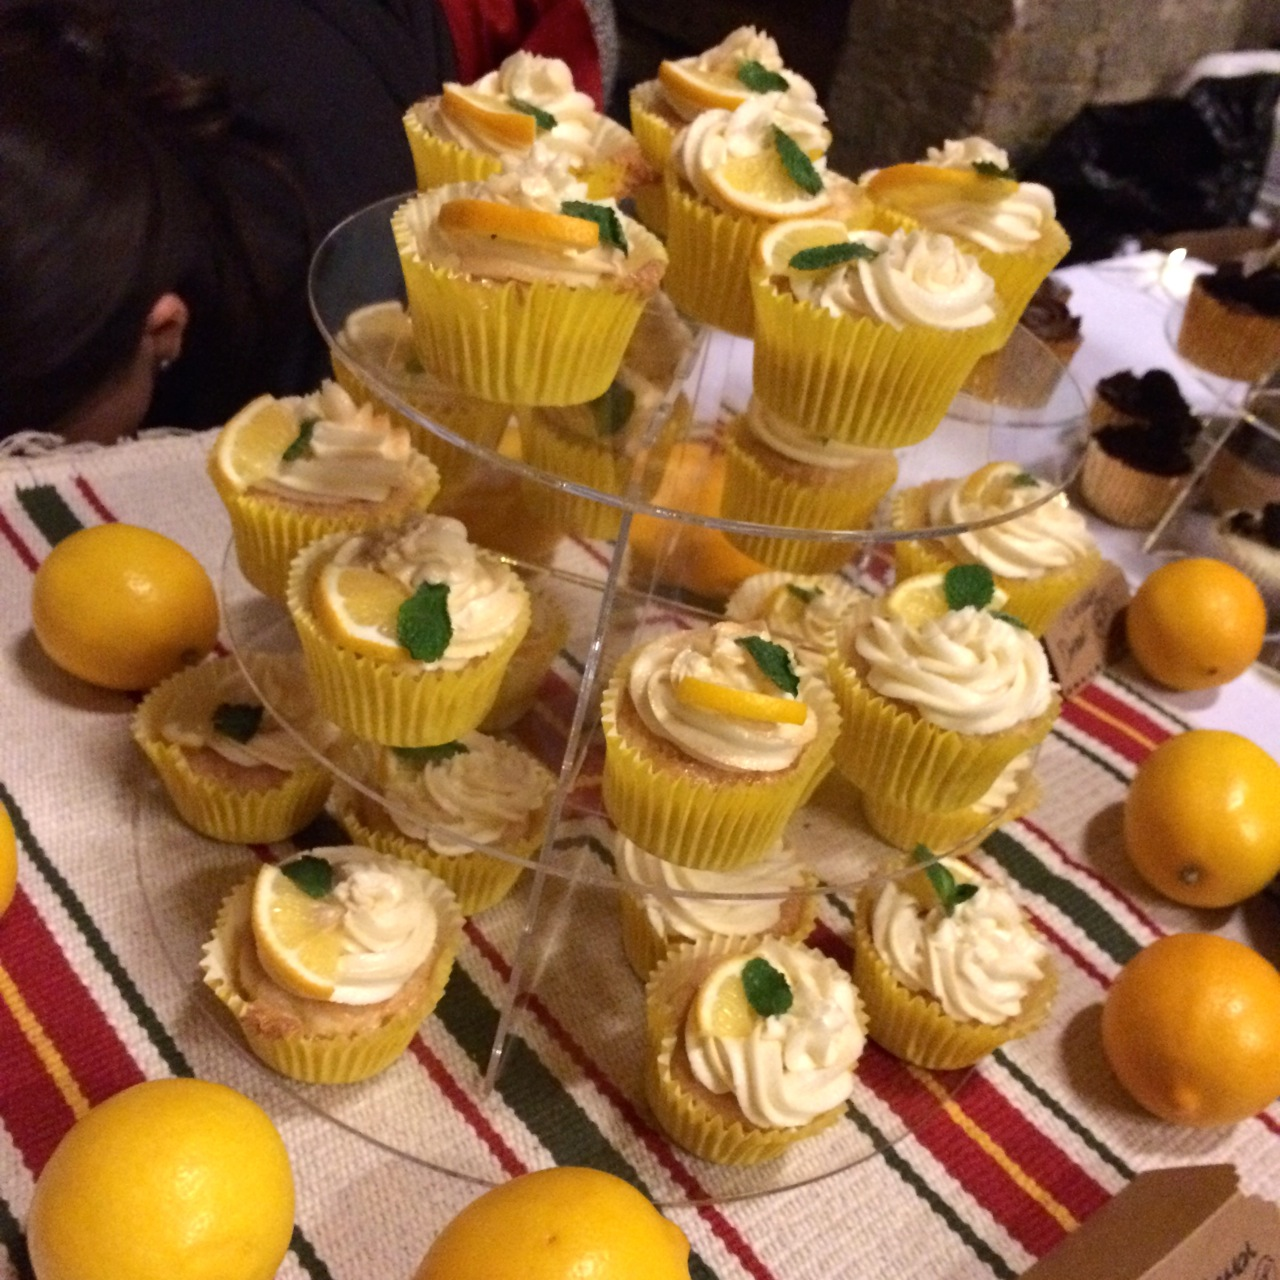 https://i1.wp.com/fatgayvegan.com/wp-content/uploads/2016/01/lemon-cupcakes.jpg?fit=1280%2C1280